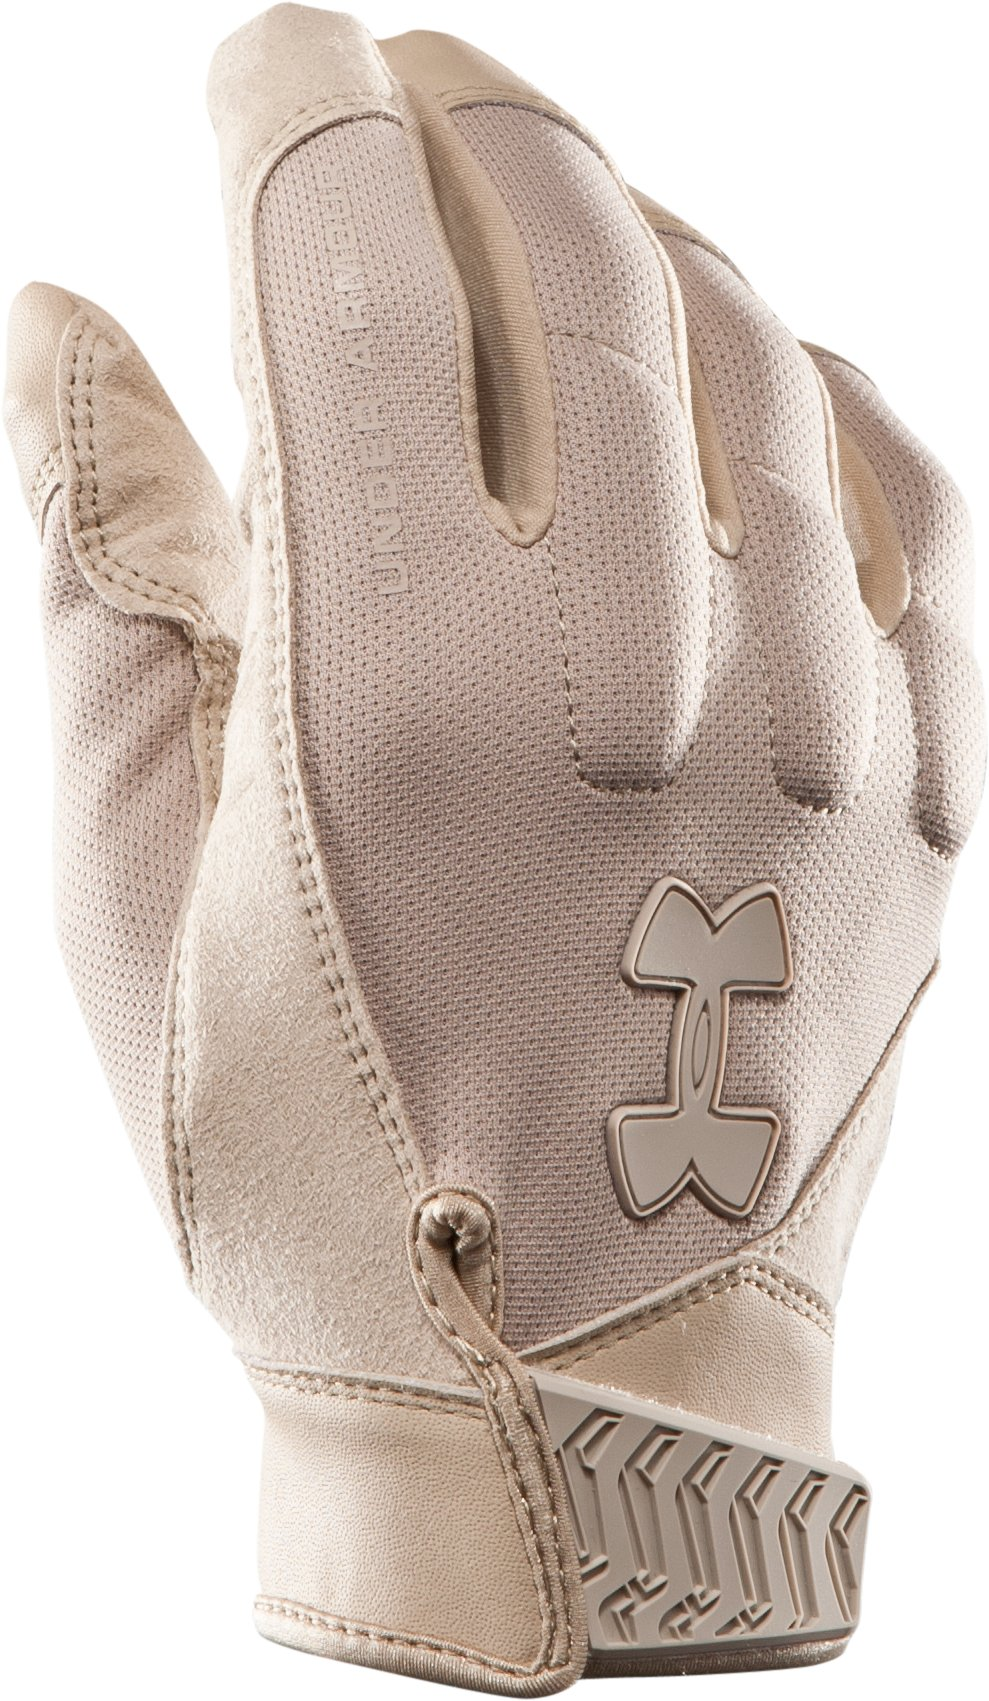 Men's Tactical Winter Blackout Glove, Desert Sand